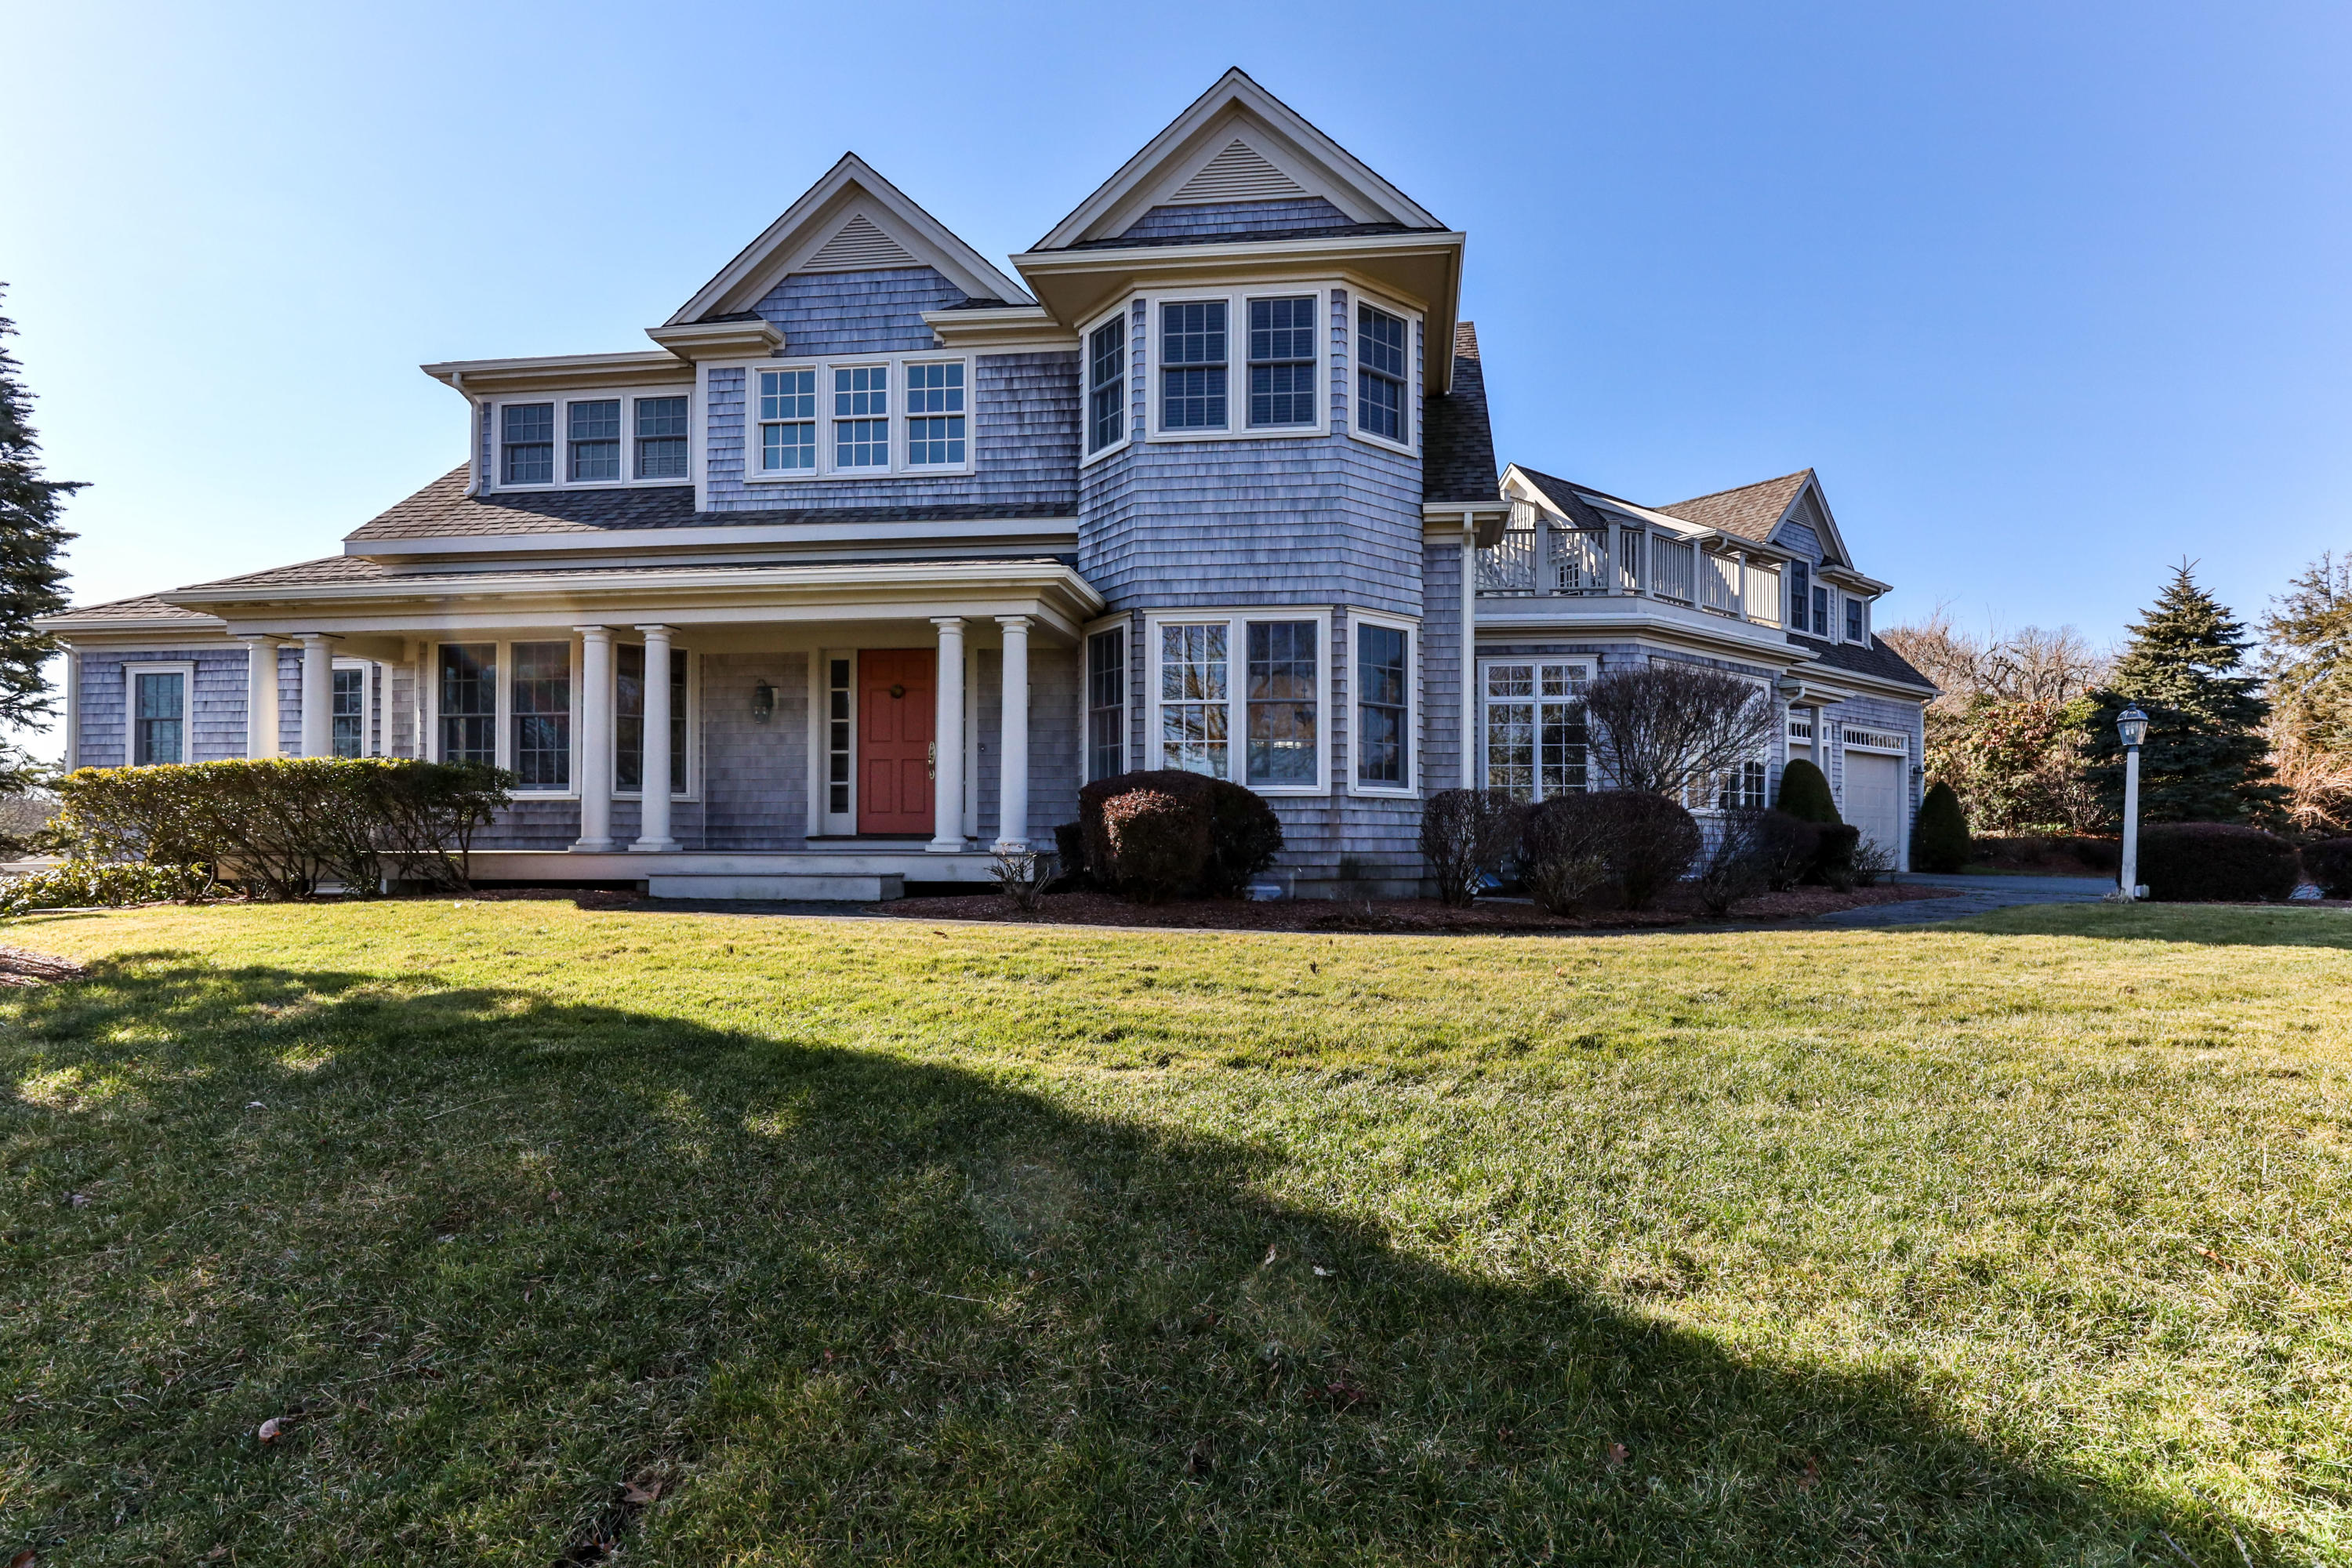 click to view more details 230 N Skyline Drive, Chatham, MA 02633